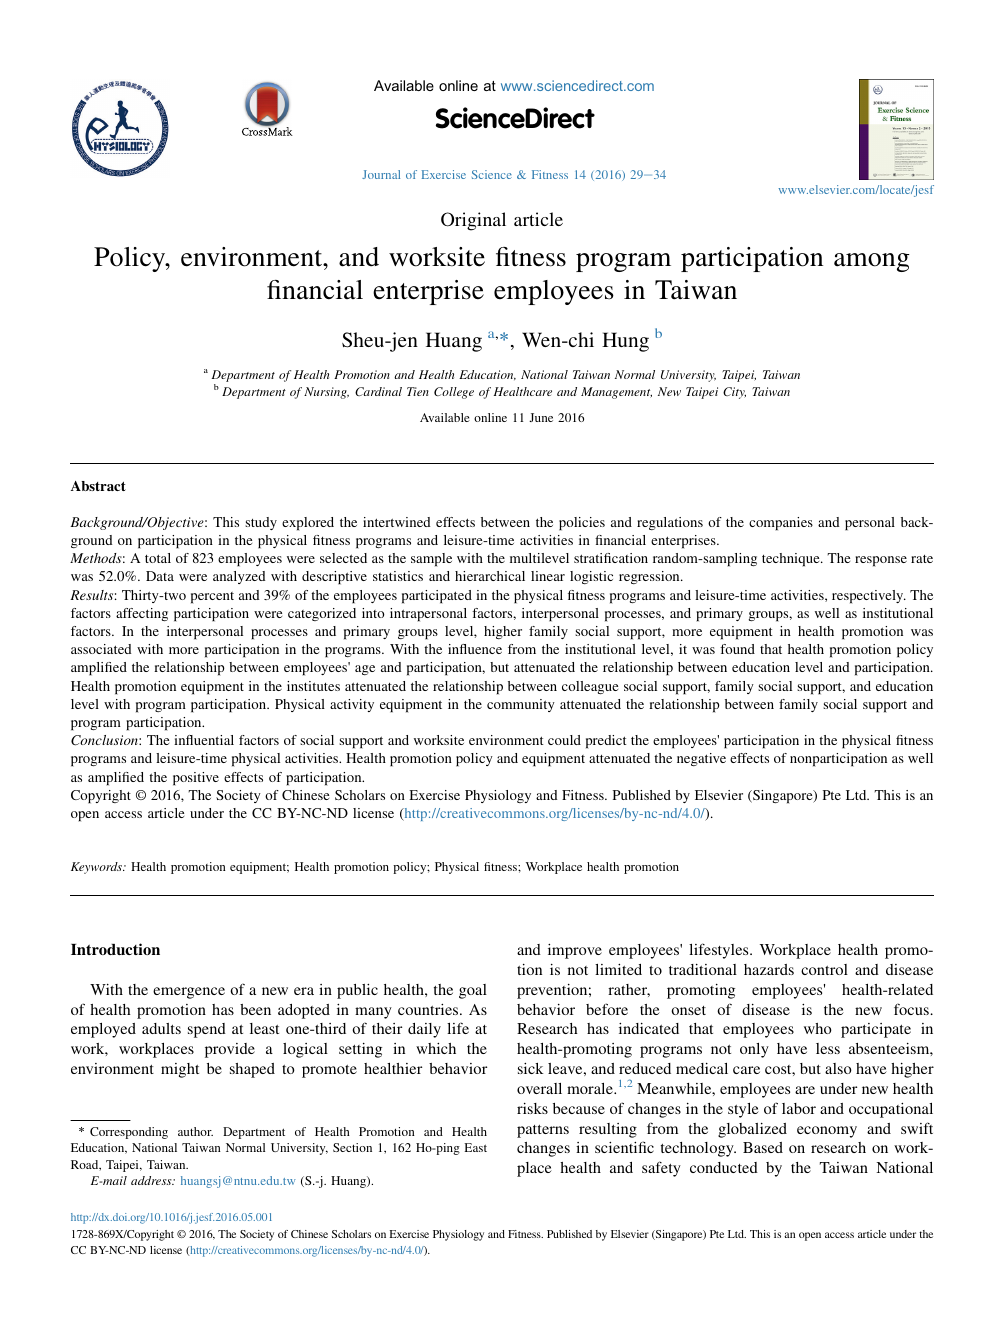 Policy, environment, and worksite fitness program participation